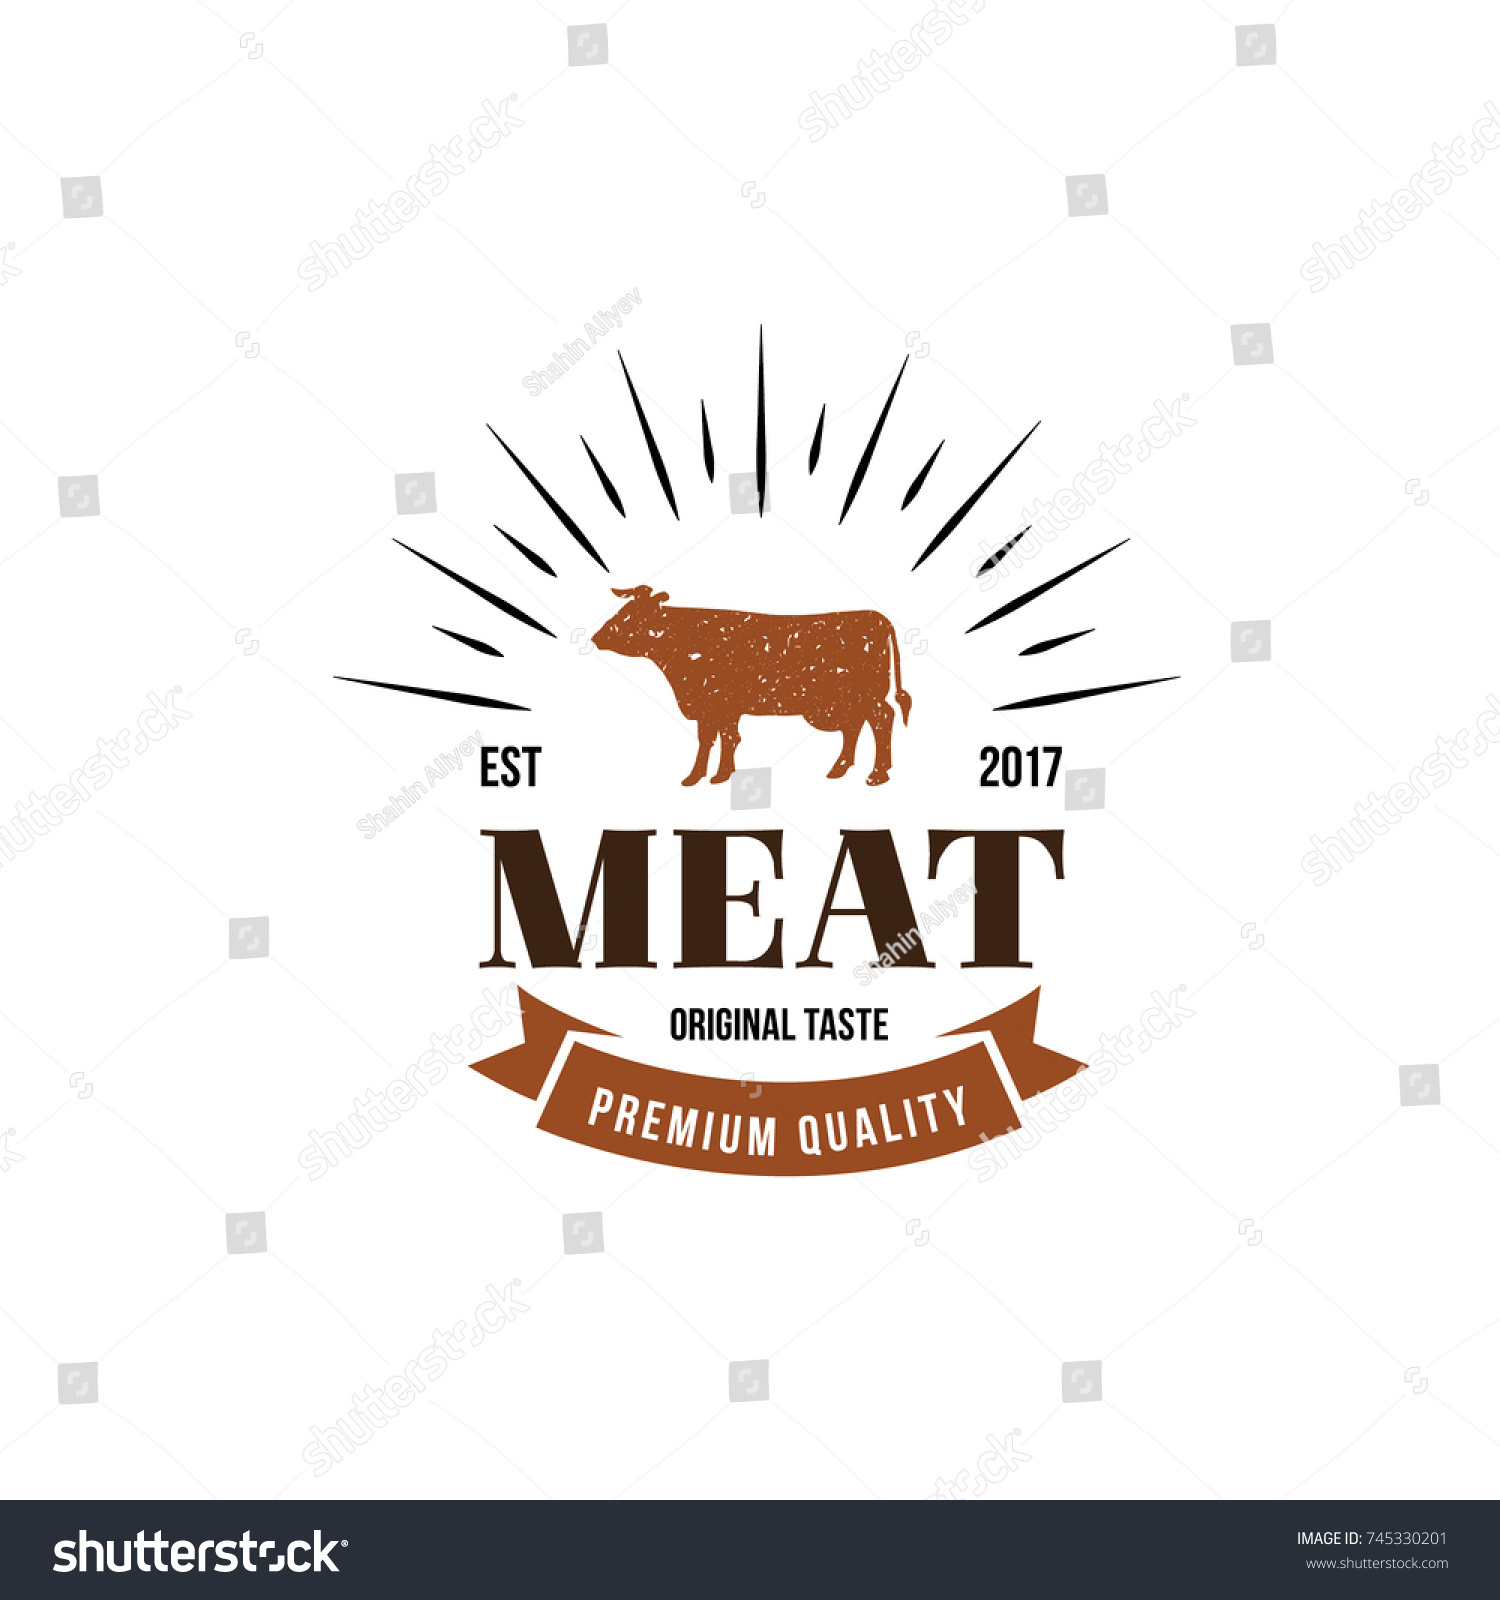 Meat logo emblem cow symbol flat stock vector 745330201 shutterstock cow symbol flat isolated graphic illustration design buycottarizona